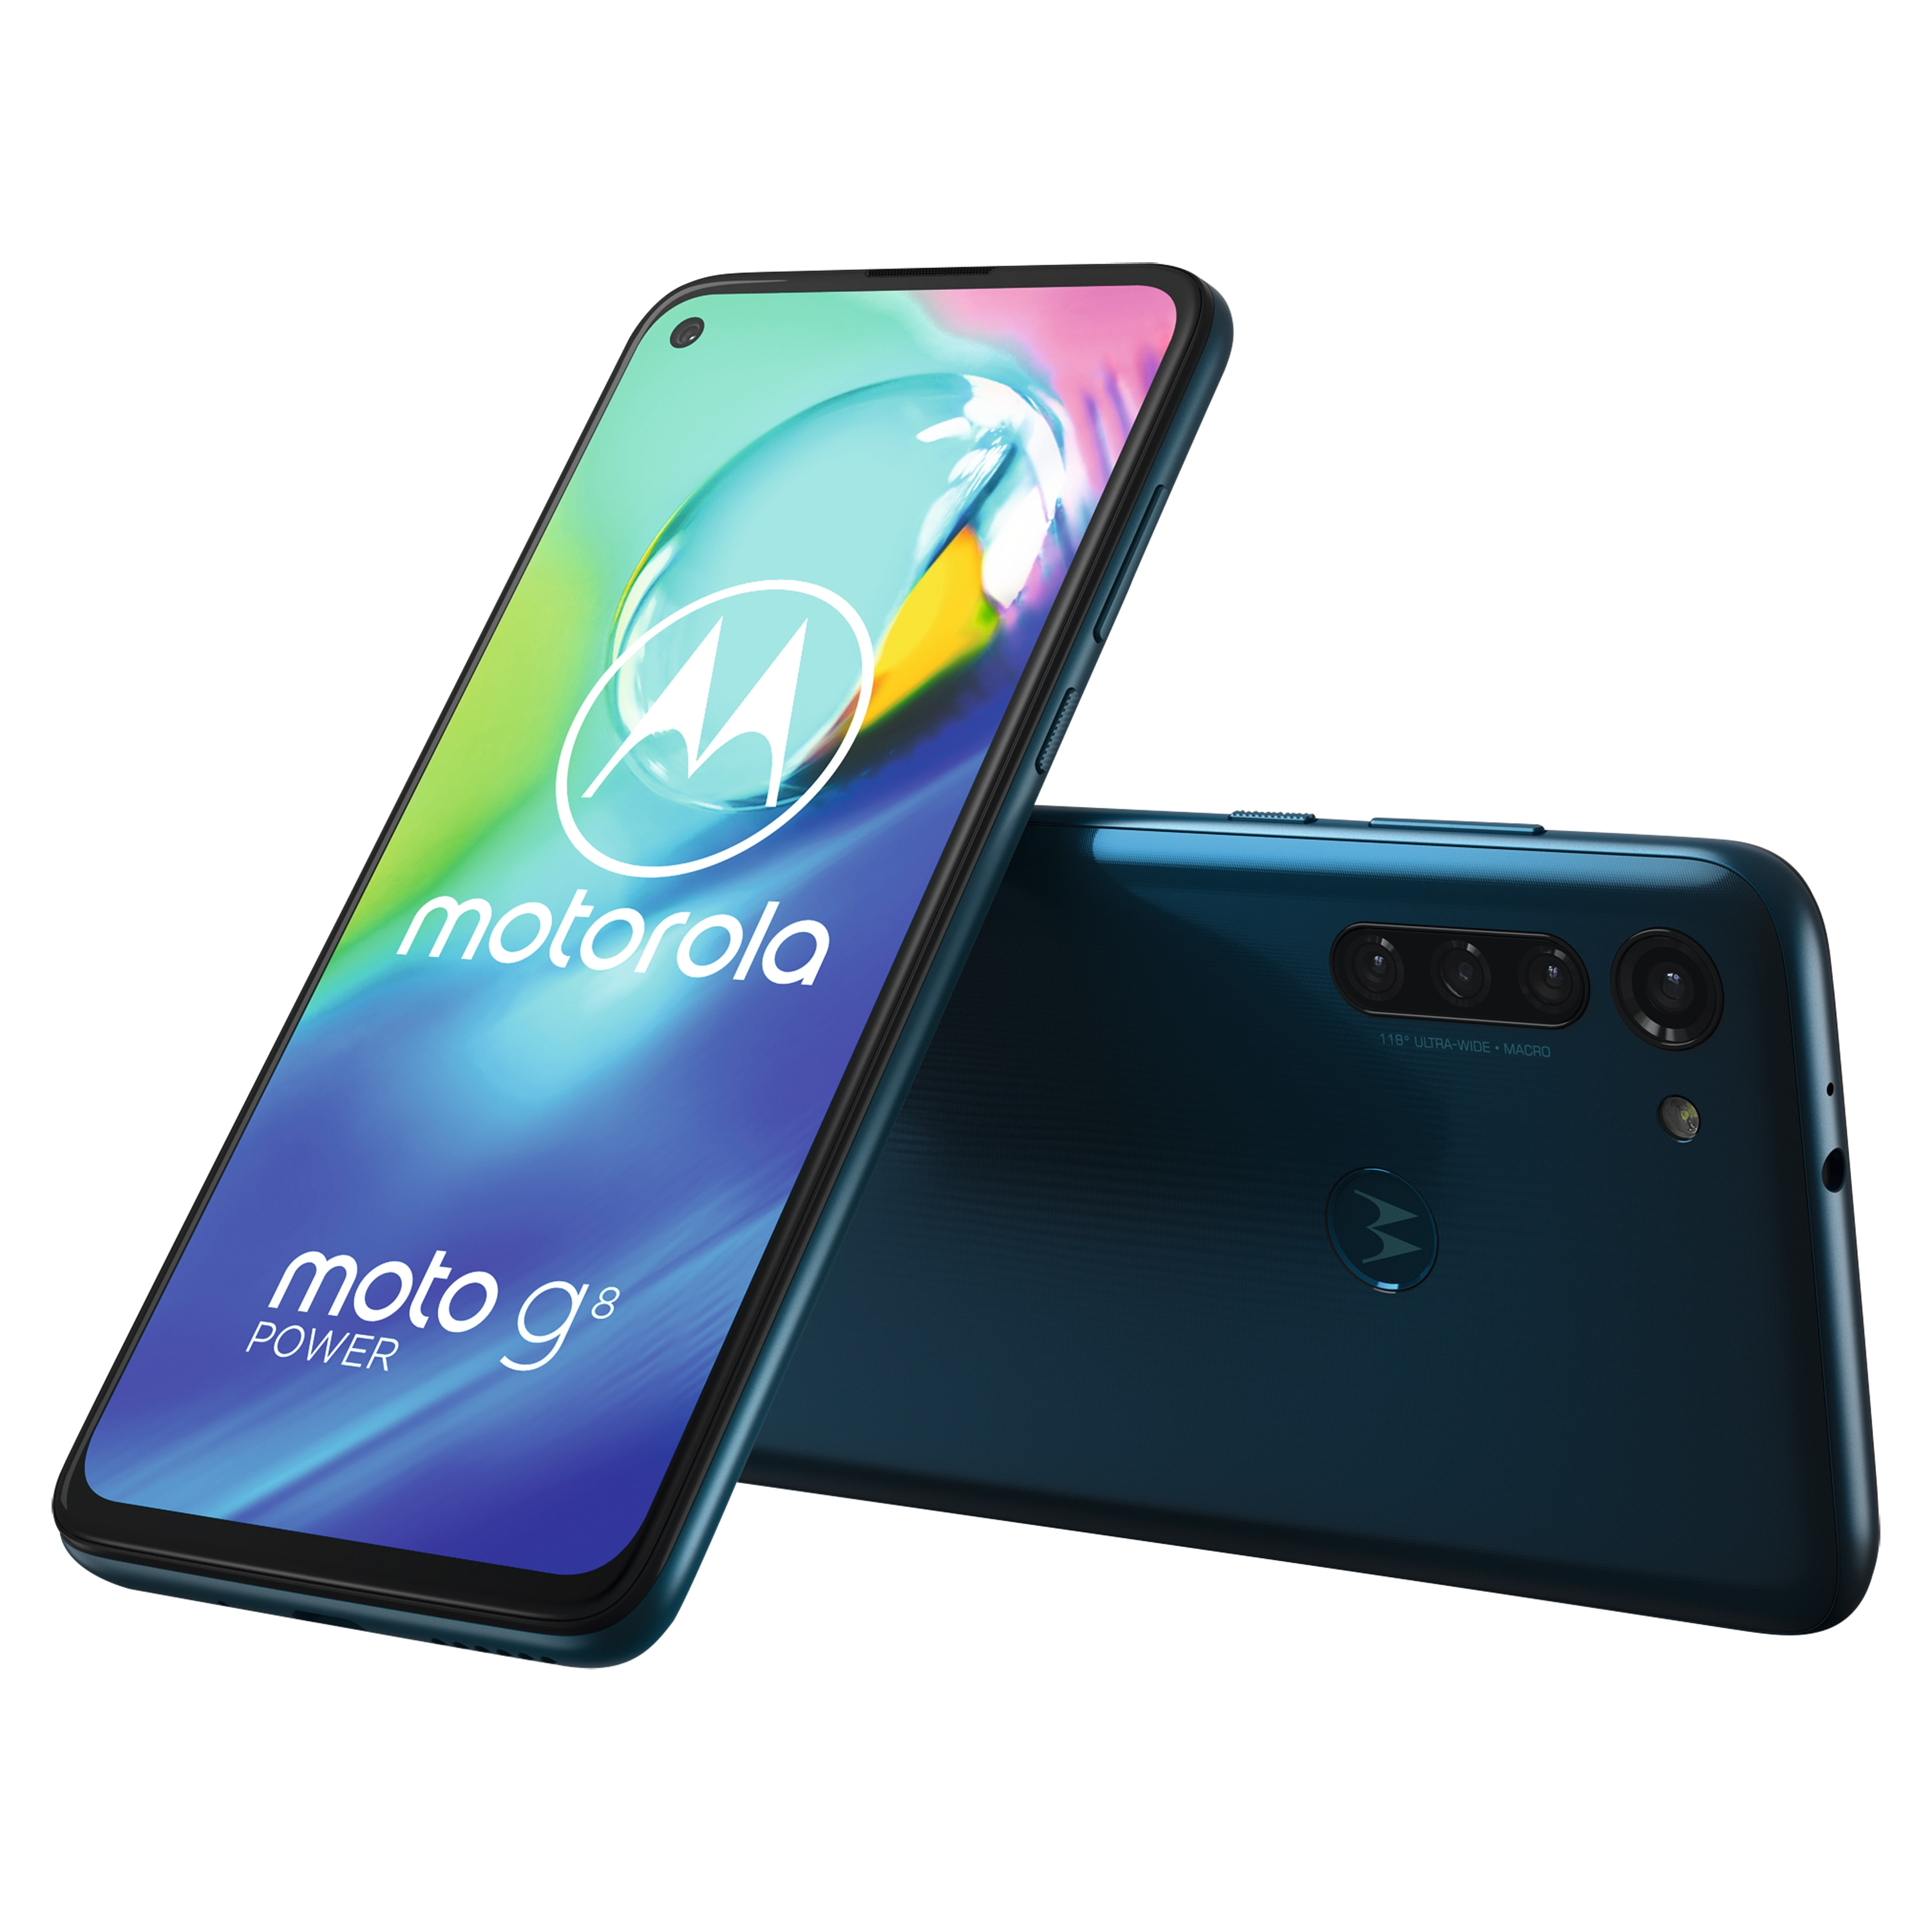 MOTOROLA moto g8 power Smartphone, 16,25 cm (6,4) Full-HD+ Display, Android™ 10, 64 GB Speicher, Octa- Core-Prozessor, Dual-SIM, Bluetooth® 5.0